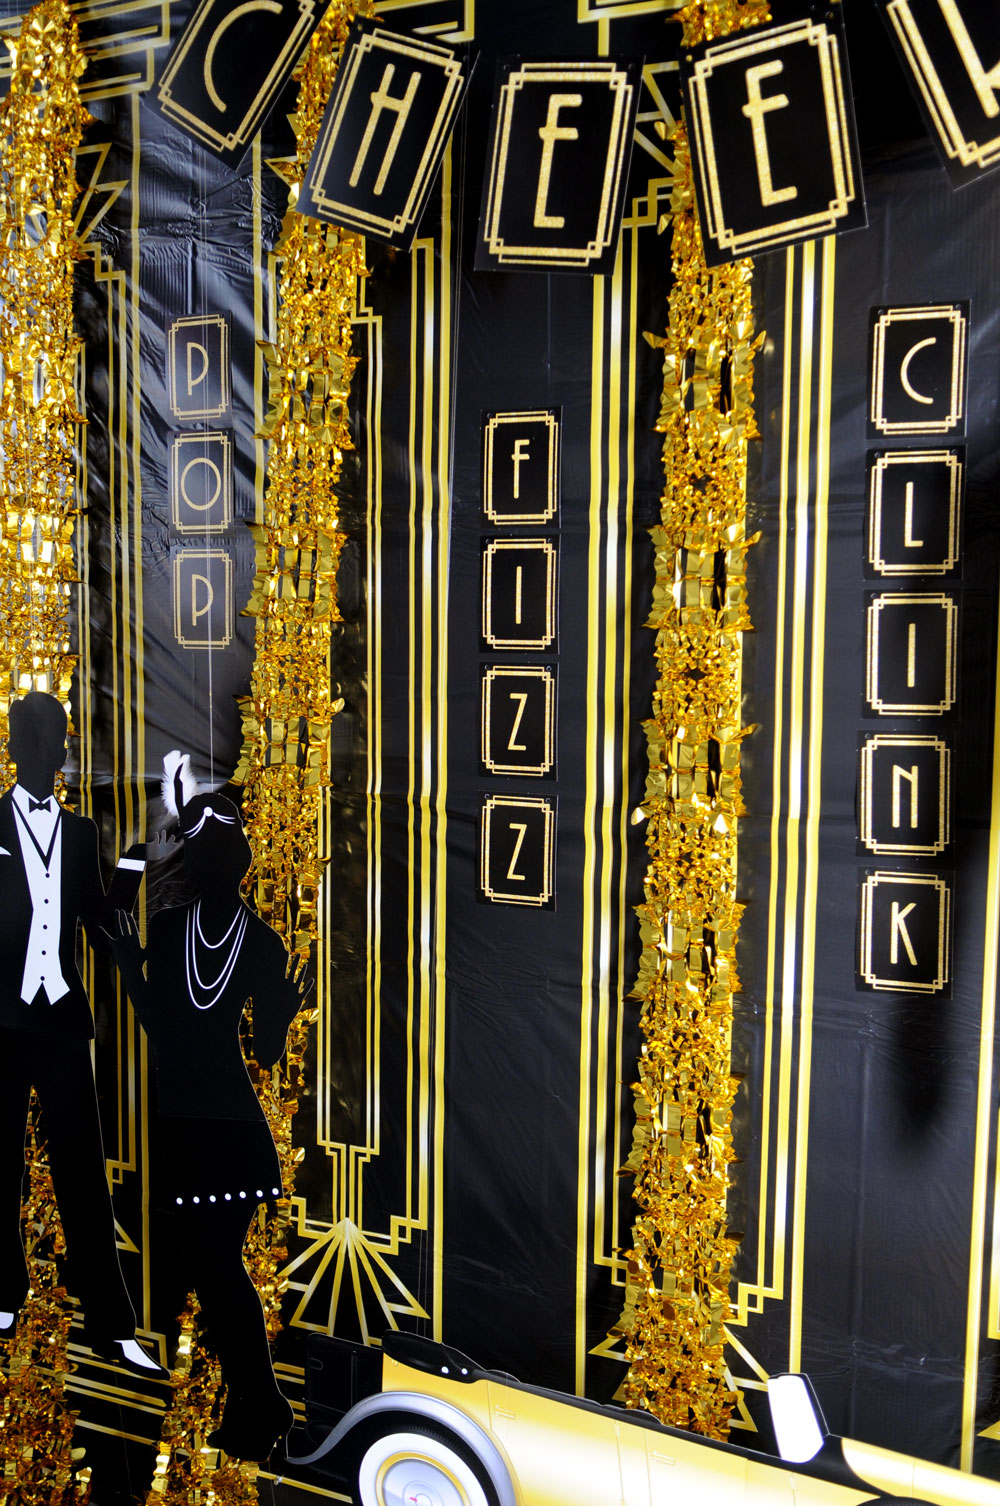 GREAT GATSBY 1920/'s CHEERS BANNER PARTY DECORATION GOLD BLACK 20/'s NEW YEARS EVE